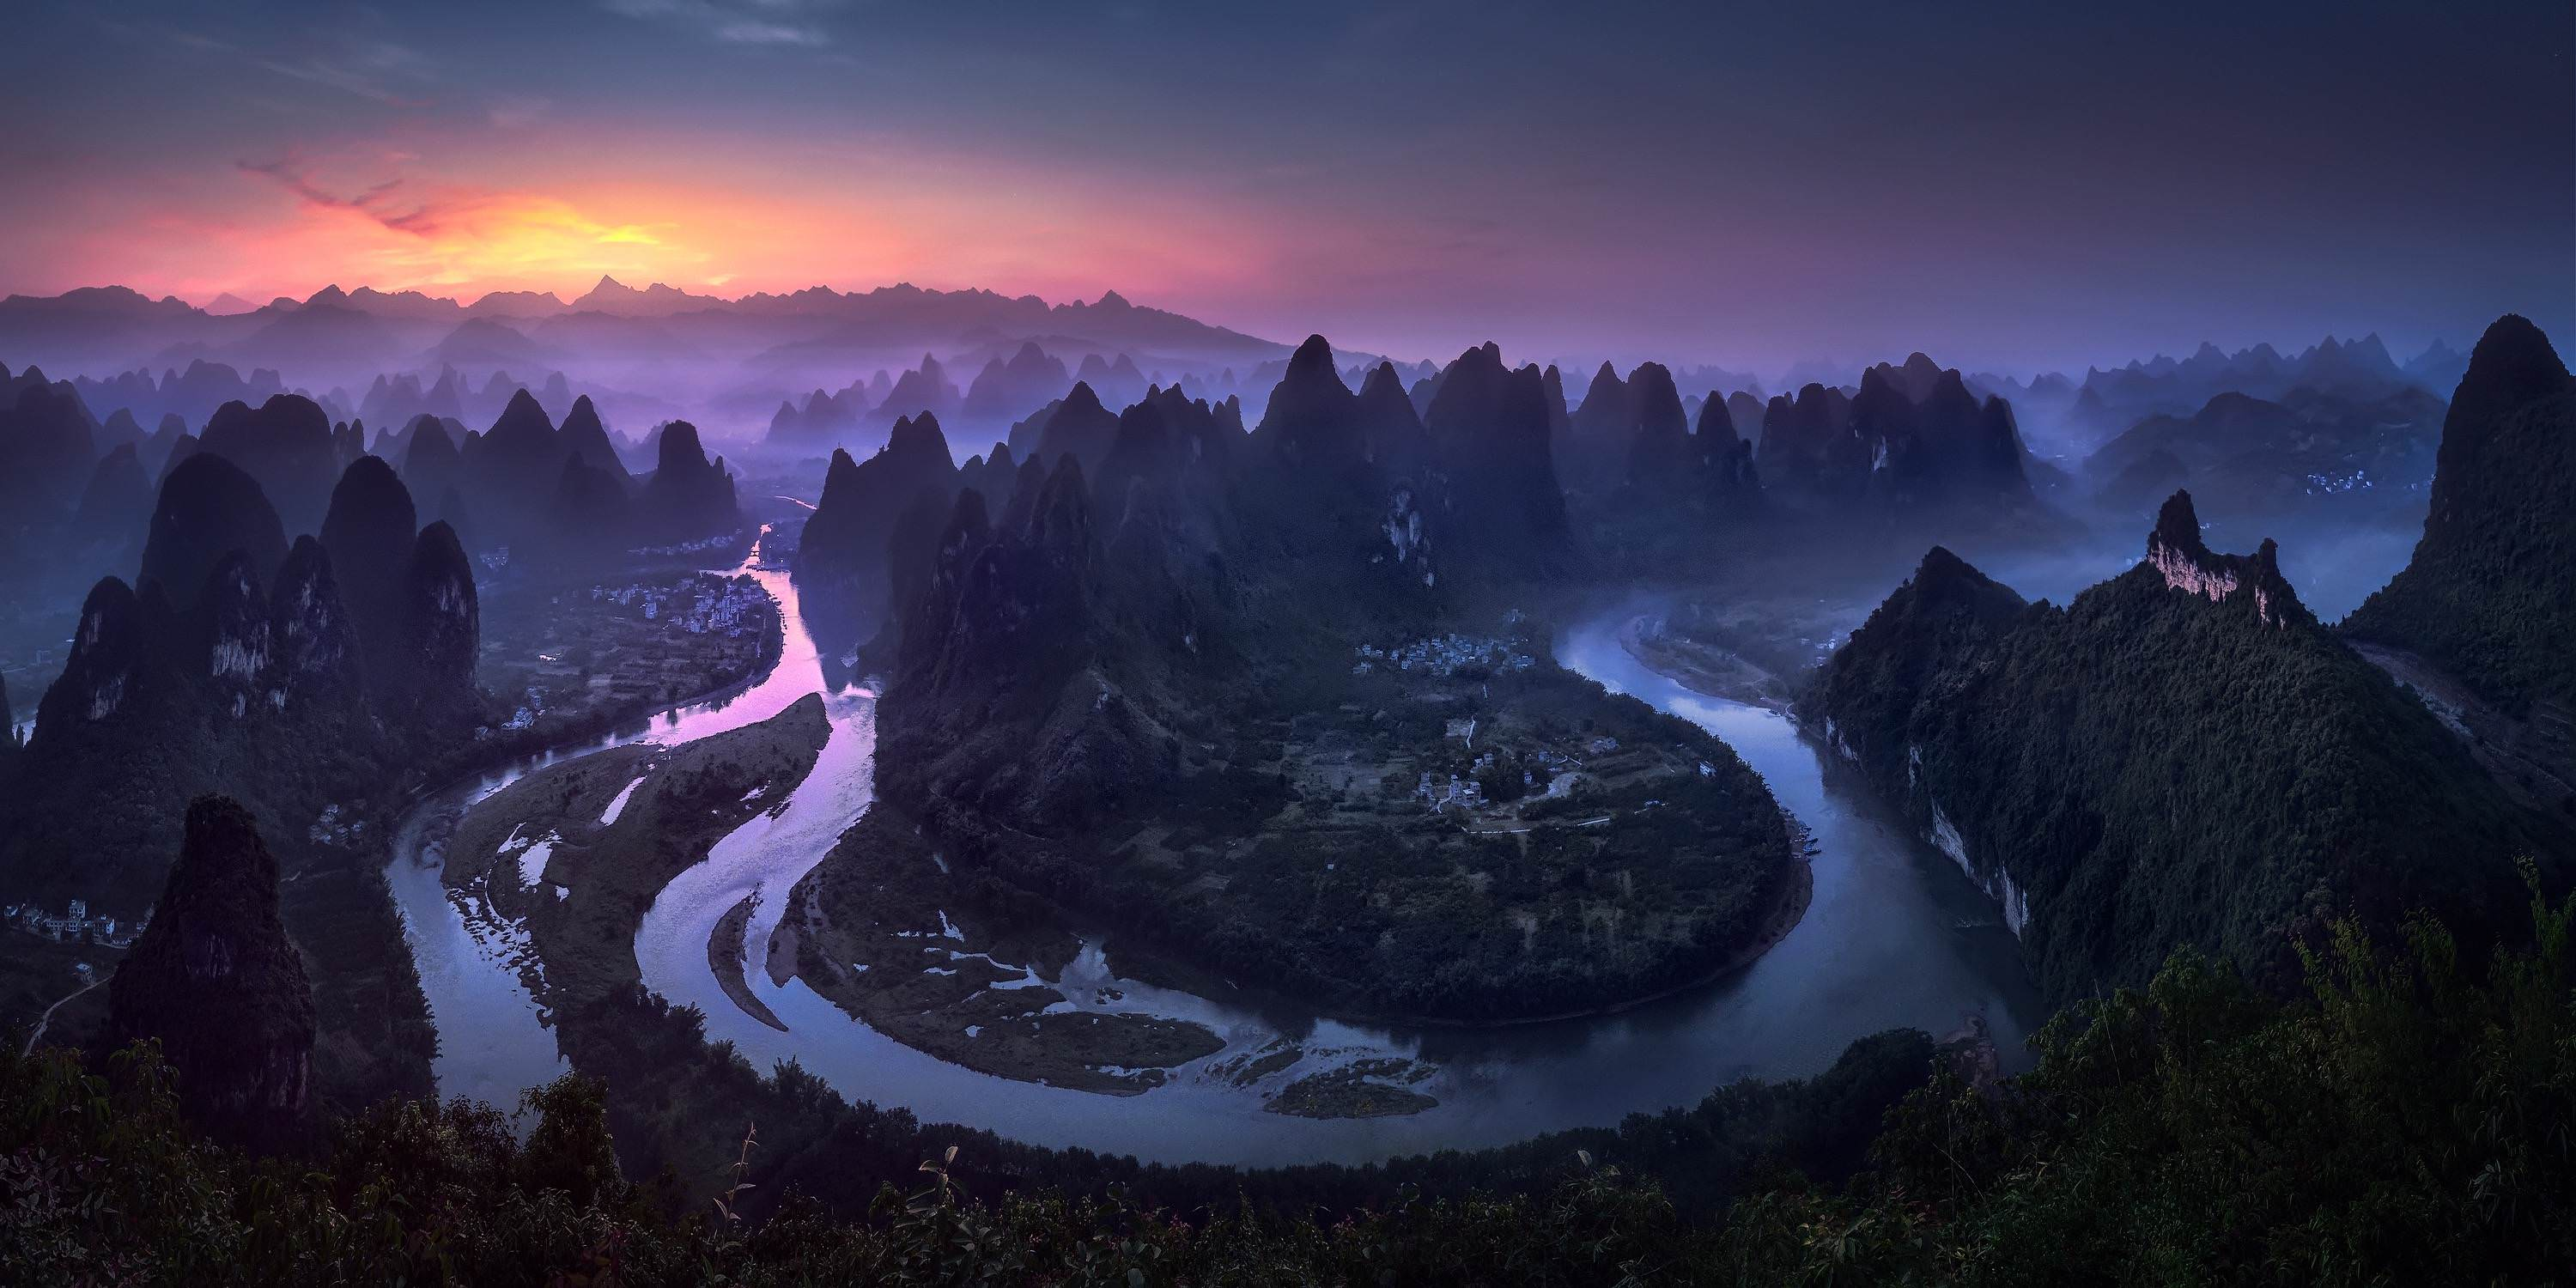 Sunrise in China's Guangxi Province along the Li River - spicedpumpkins - bit.ly2D418dC